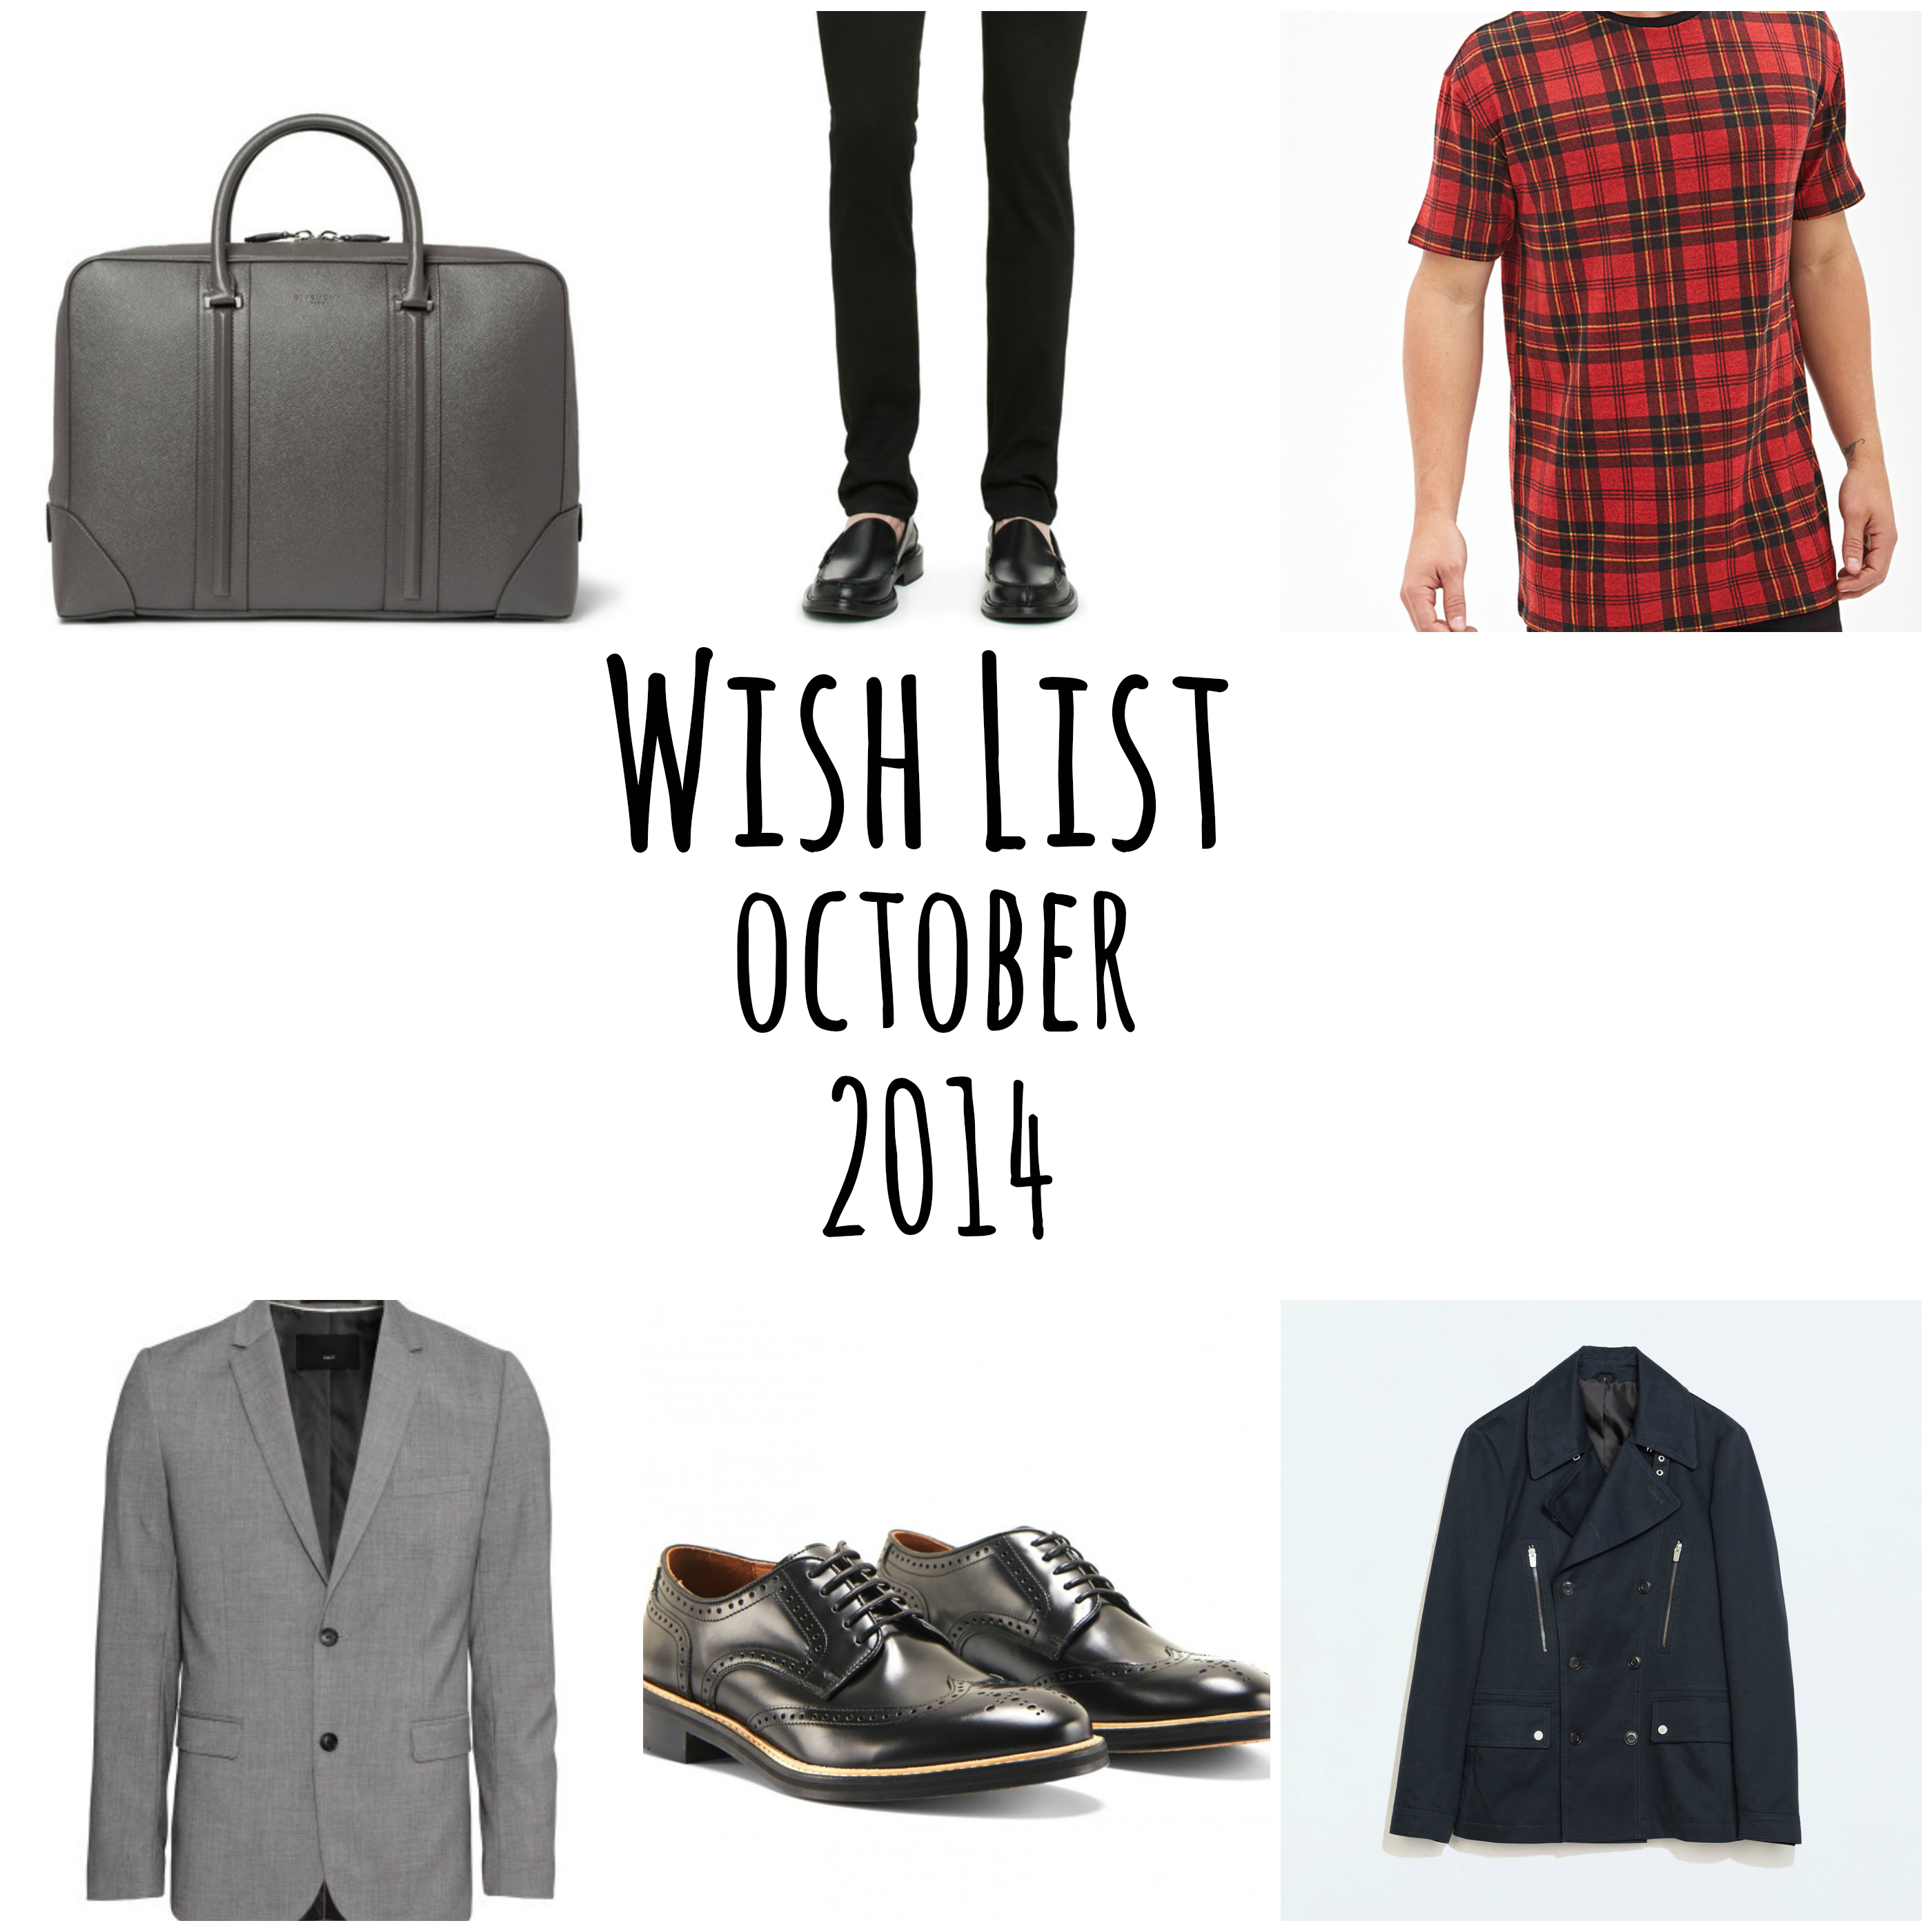 Wish List October - Givenchy - Acne Studios